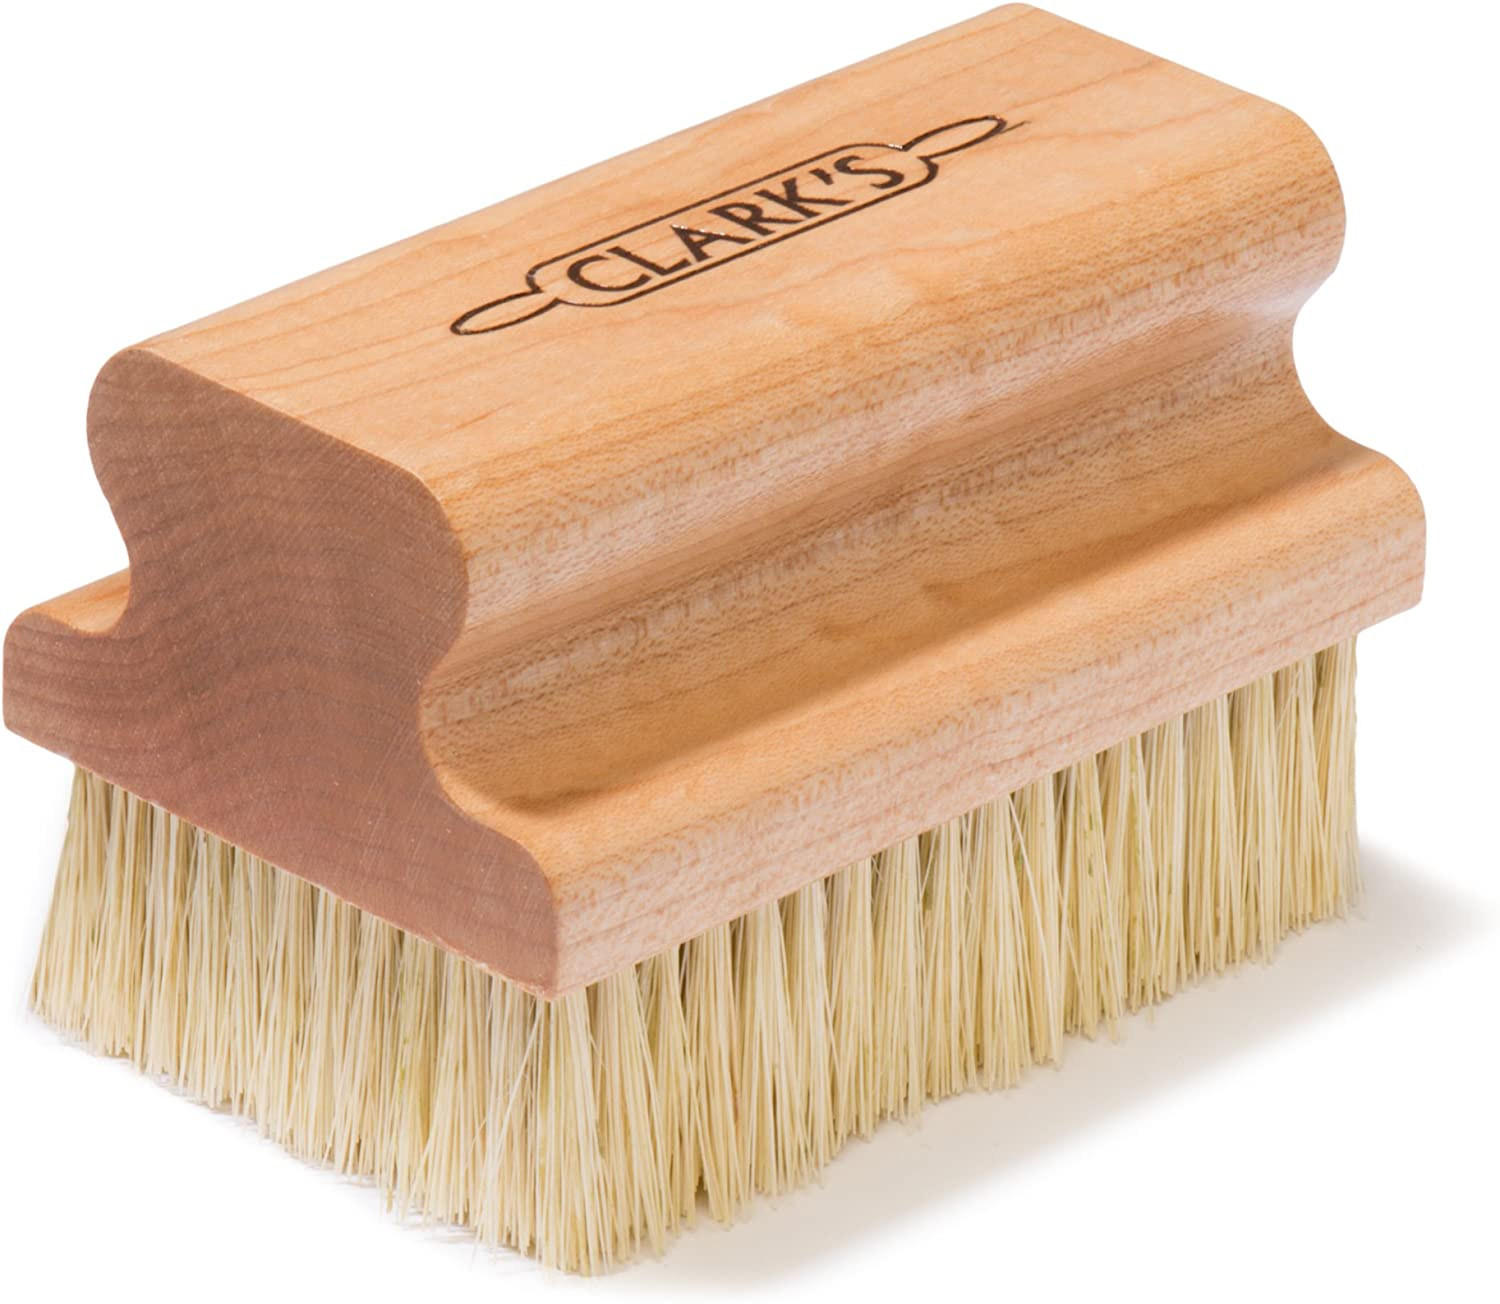 CLARK'S Large Scrub Brush | Maple Construction | Scrub Brush for Cast Iron, Cutting Boards, Butcher Blocks, Dishes, Countertops and wood surfaces | Proudly made in the USA